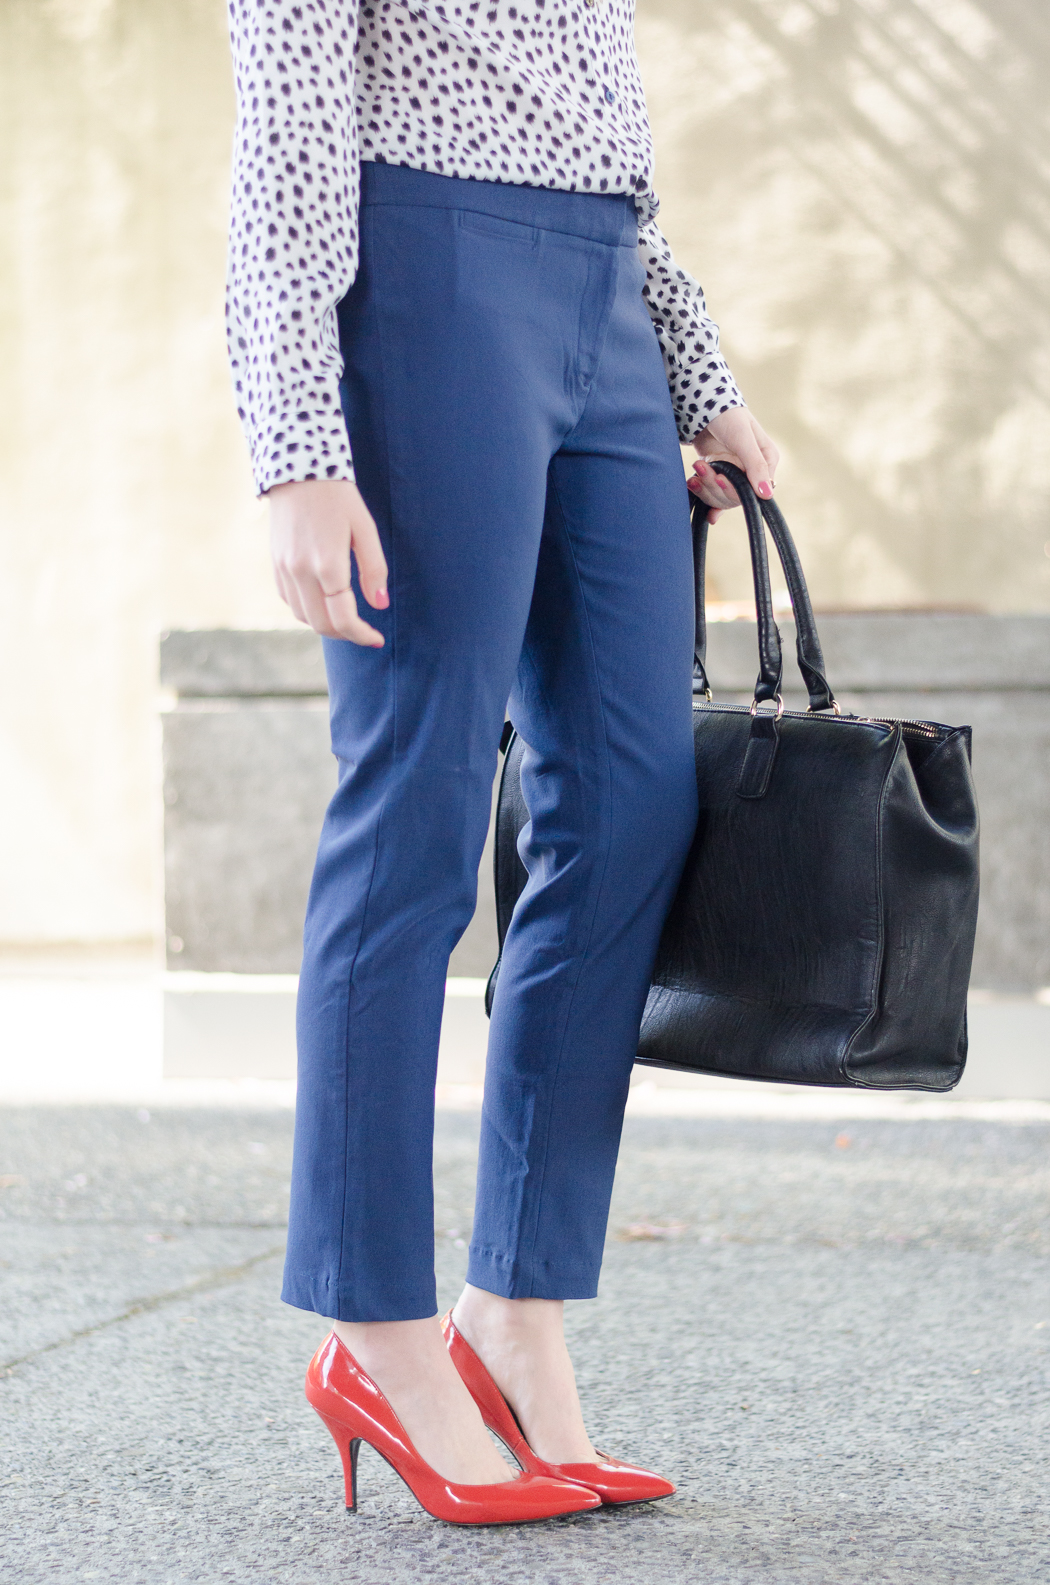 A Casual Summer Capsule Wardrobe: Stylish Business Casual Outfit Idea